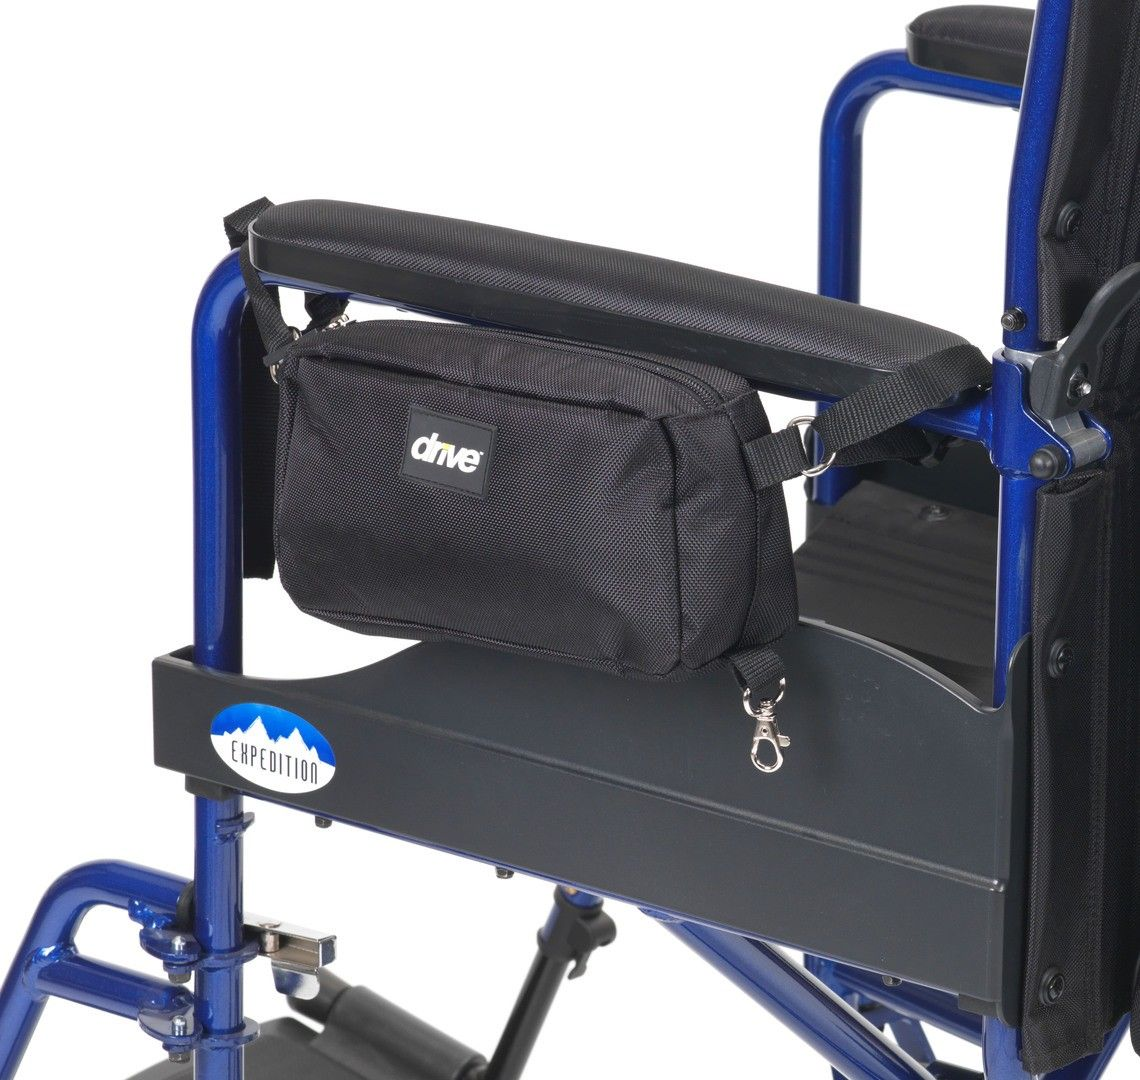 Wheelchair Bag Set showing the smaller bag attached to the armrest of the wheelchair